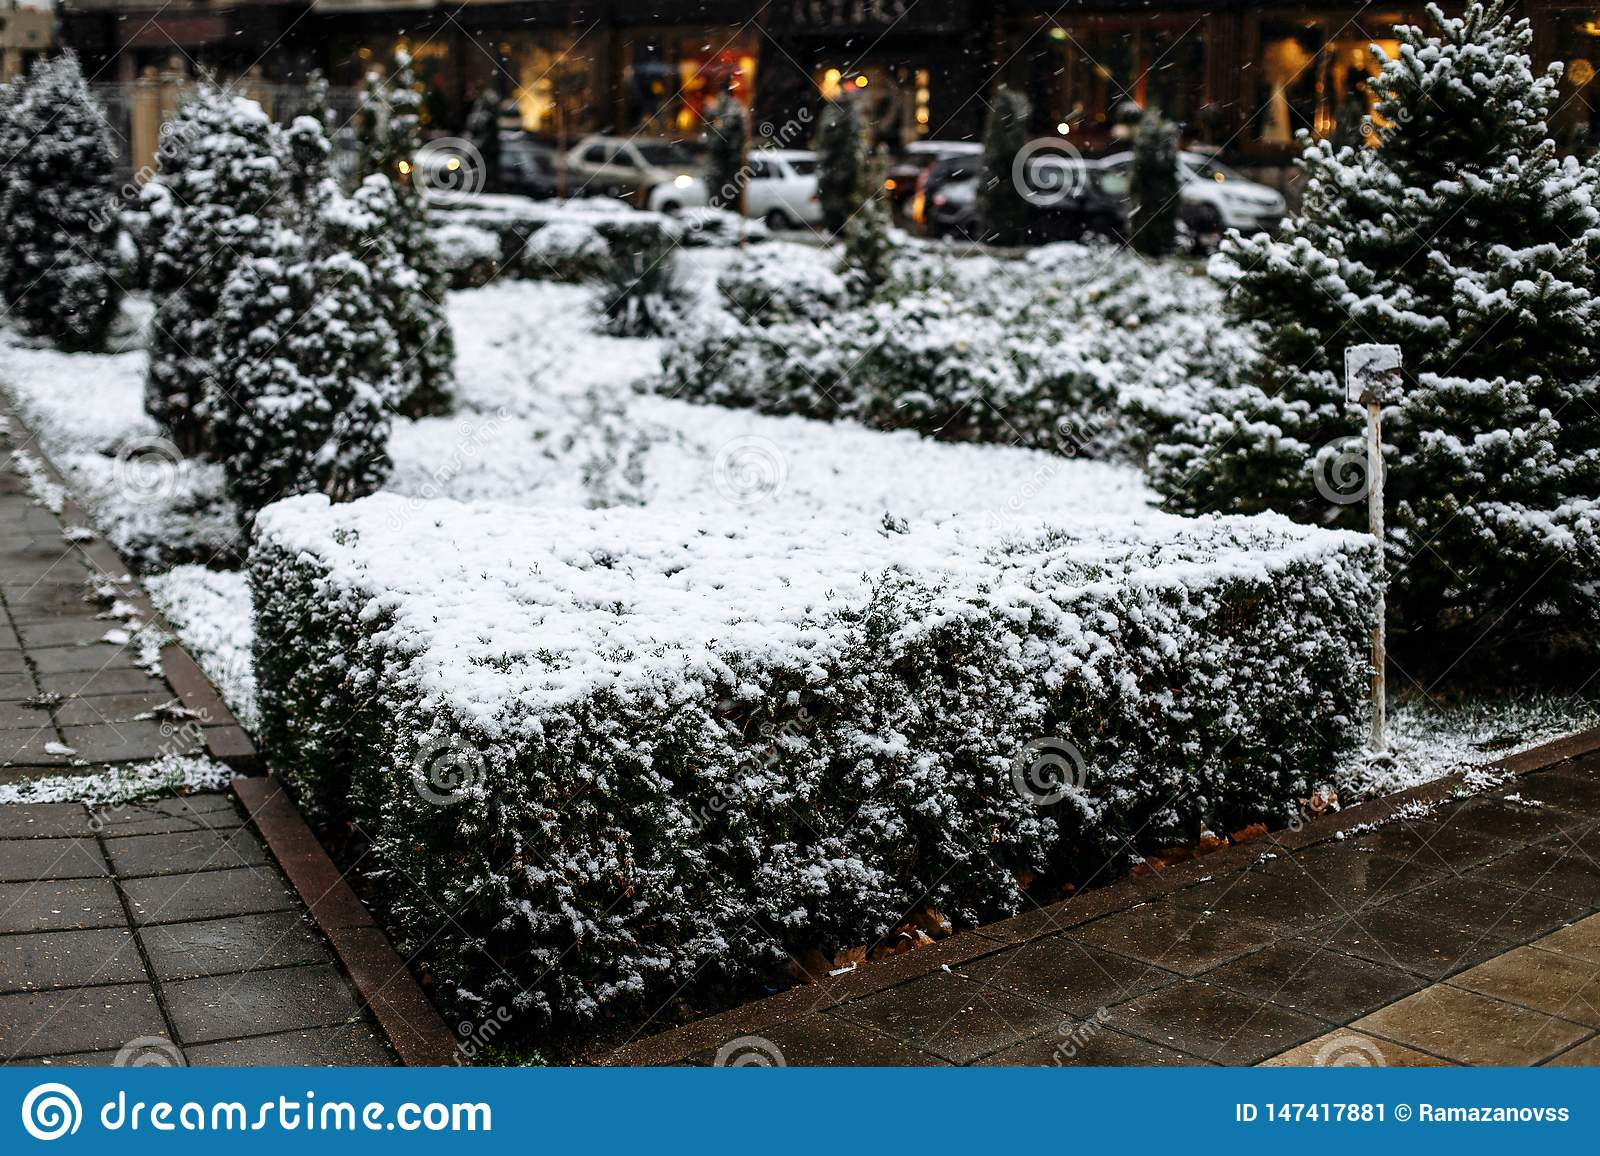 Snow on bushes in the city park